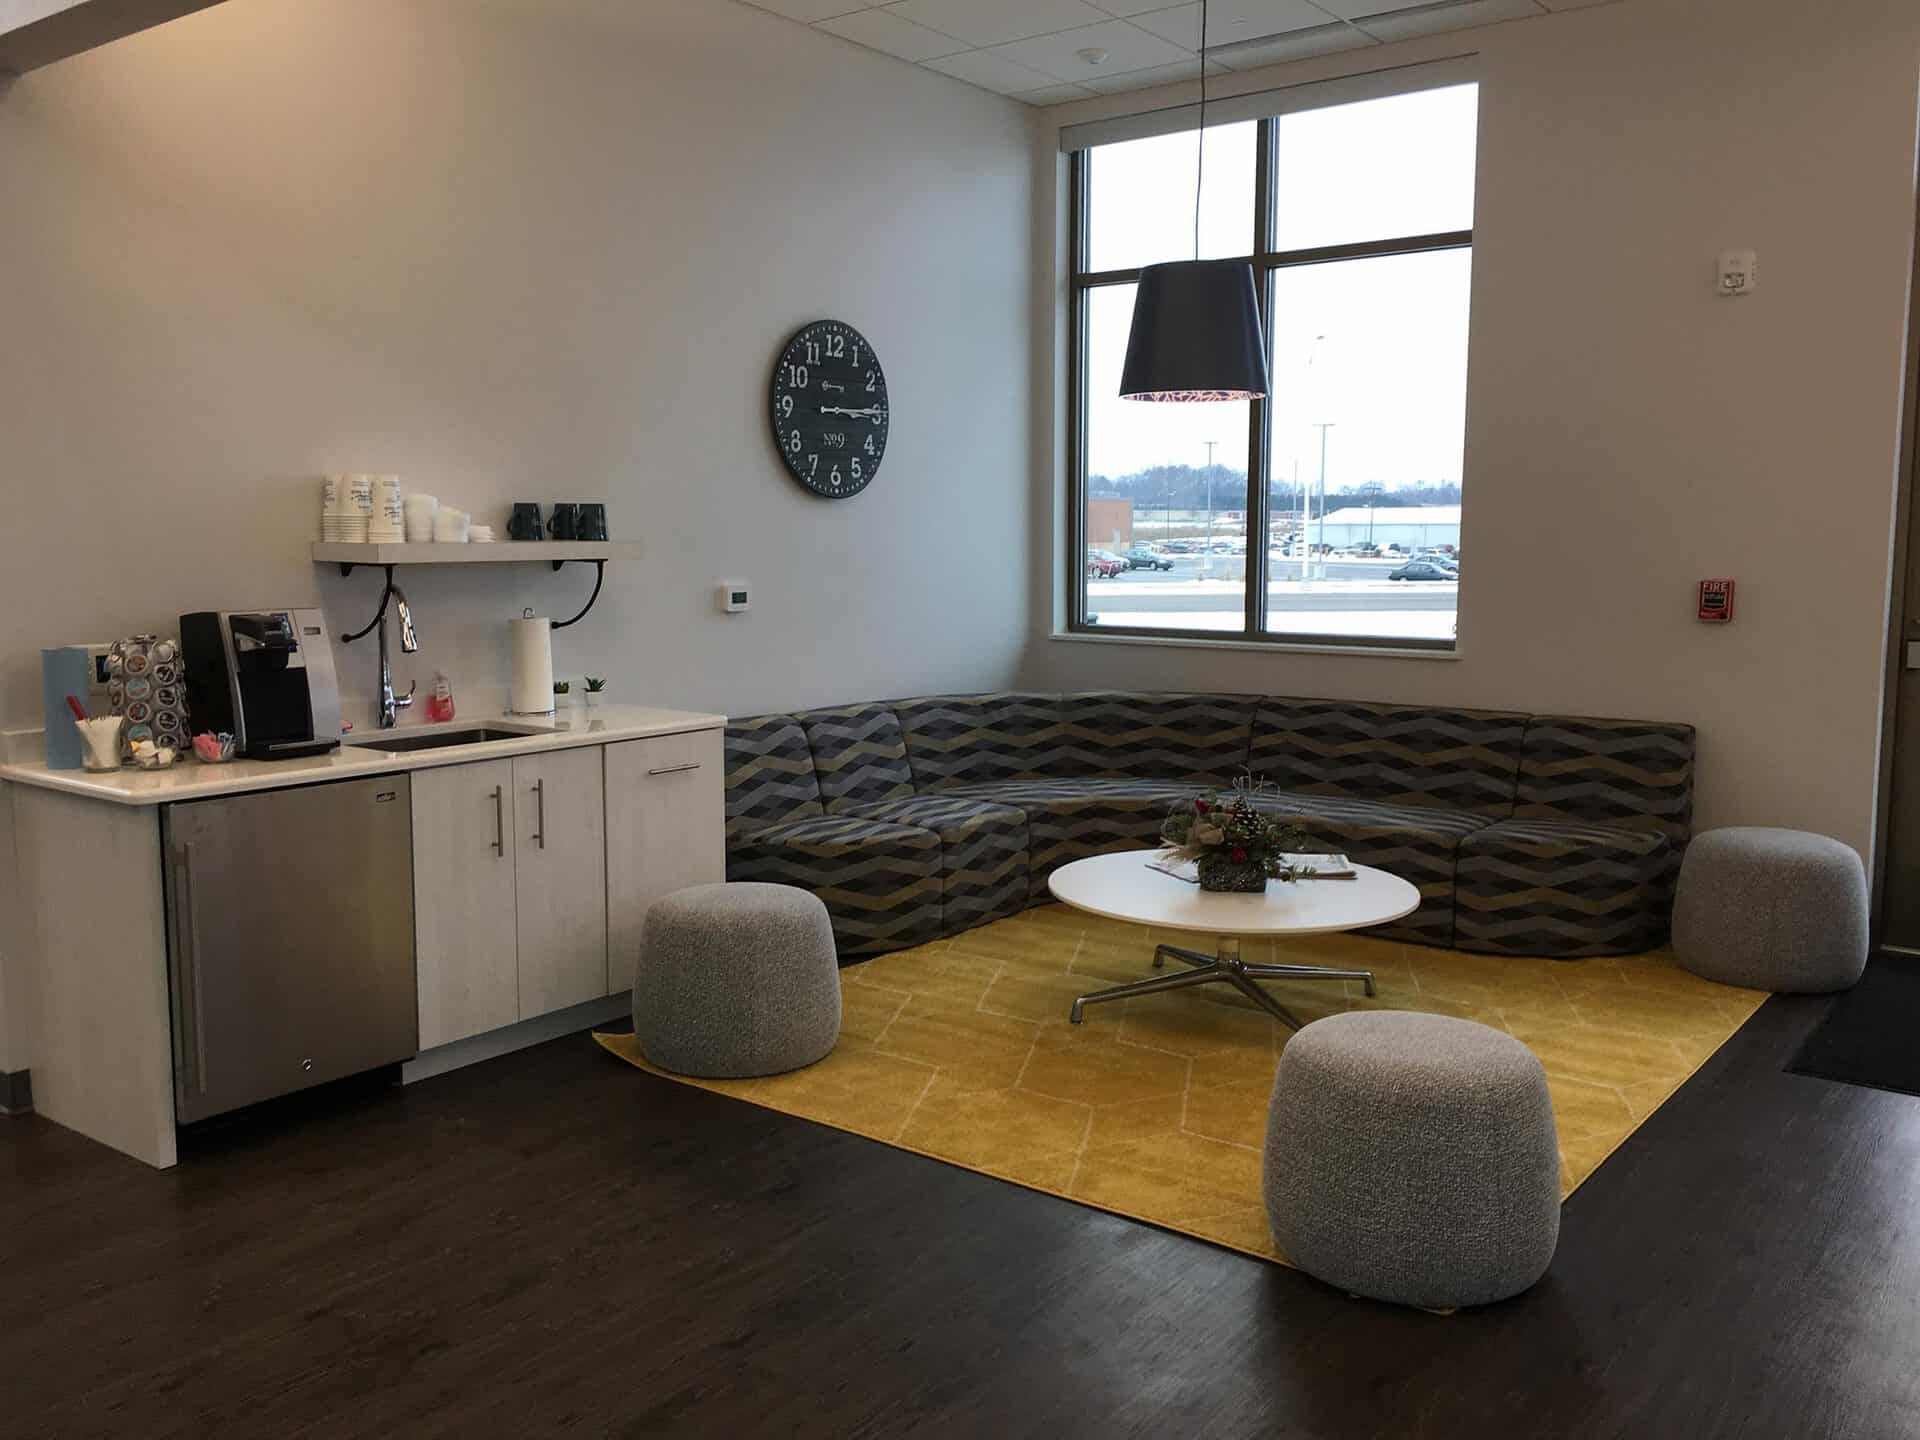 McFarland State Bank lounge area